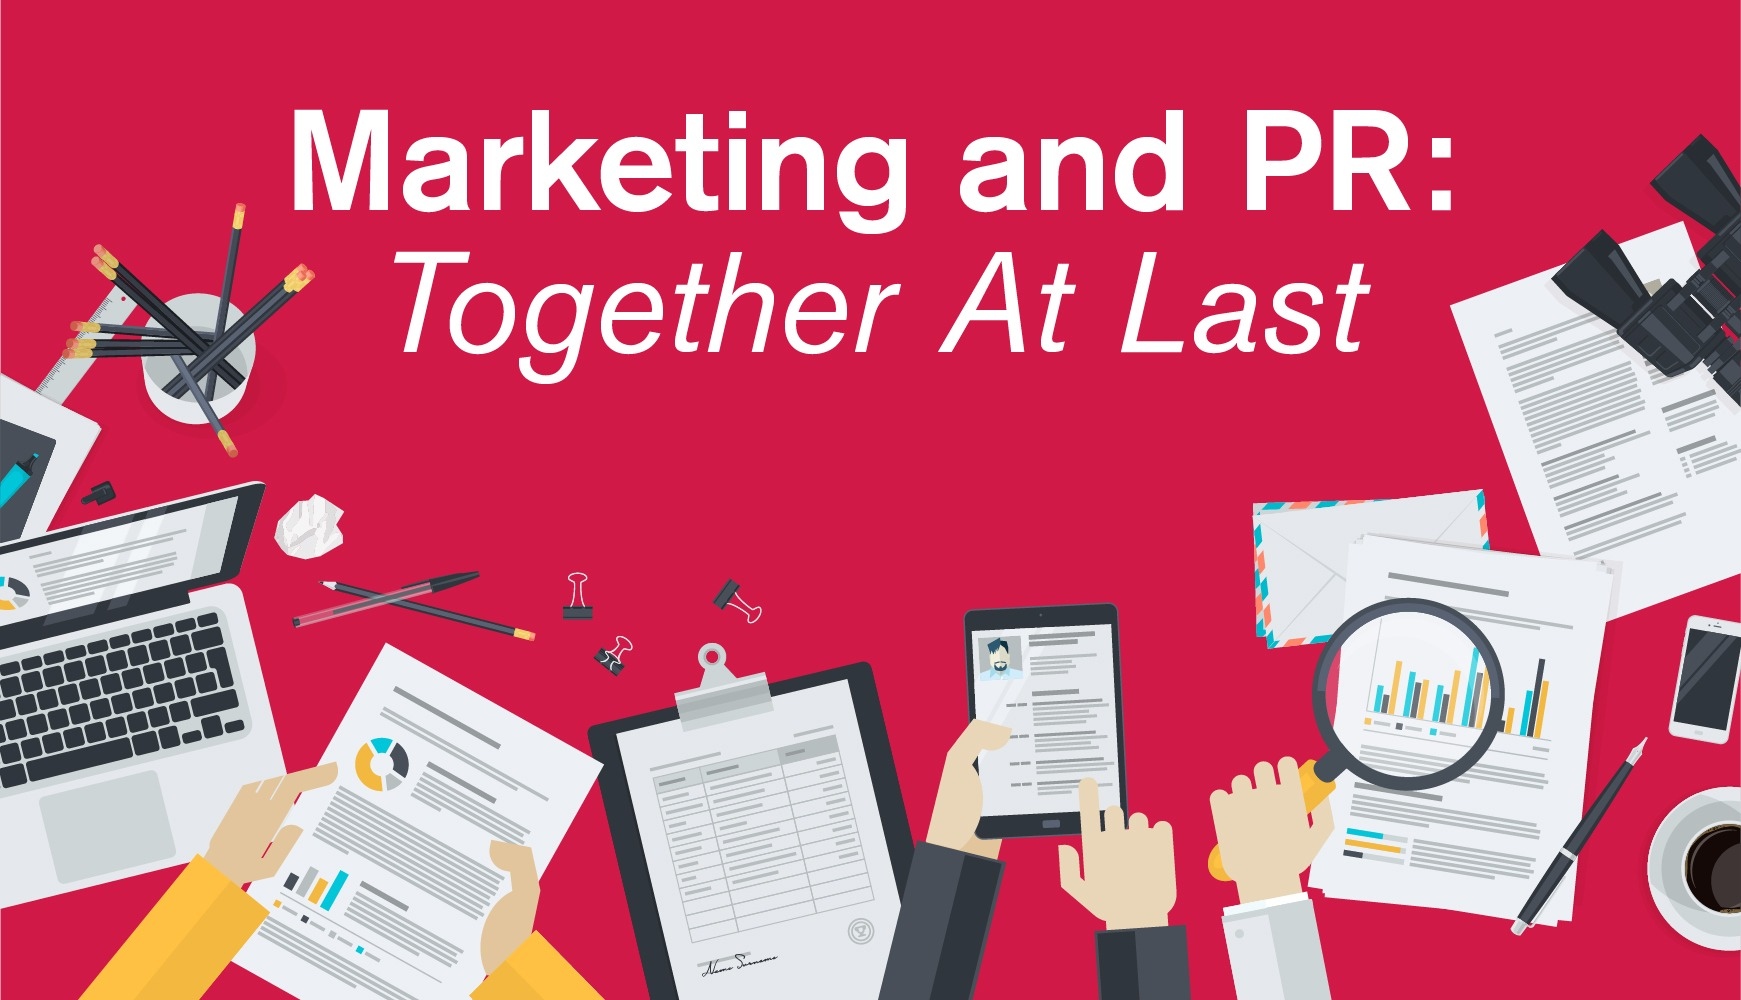 Marketing and PR working together